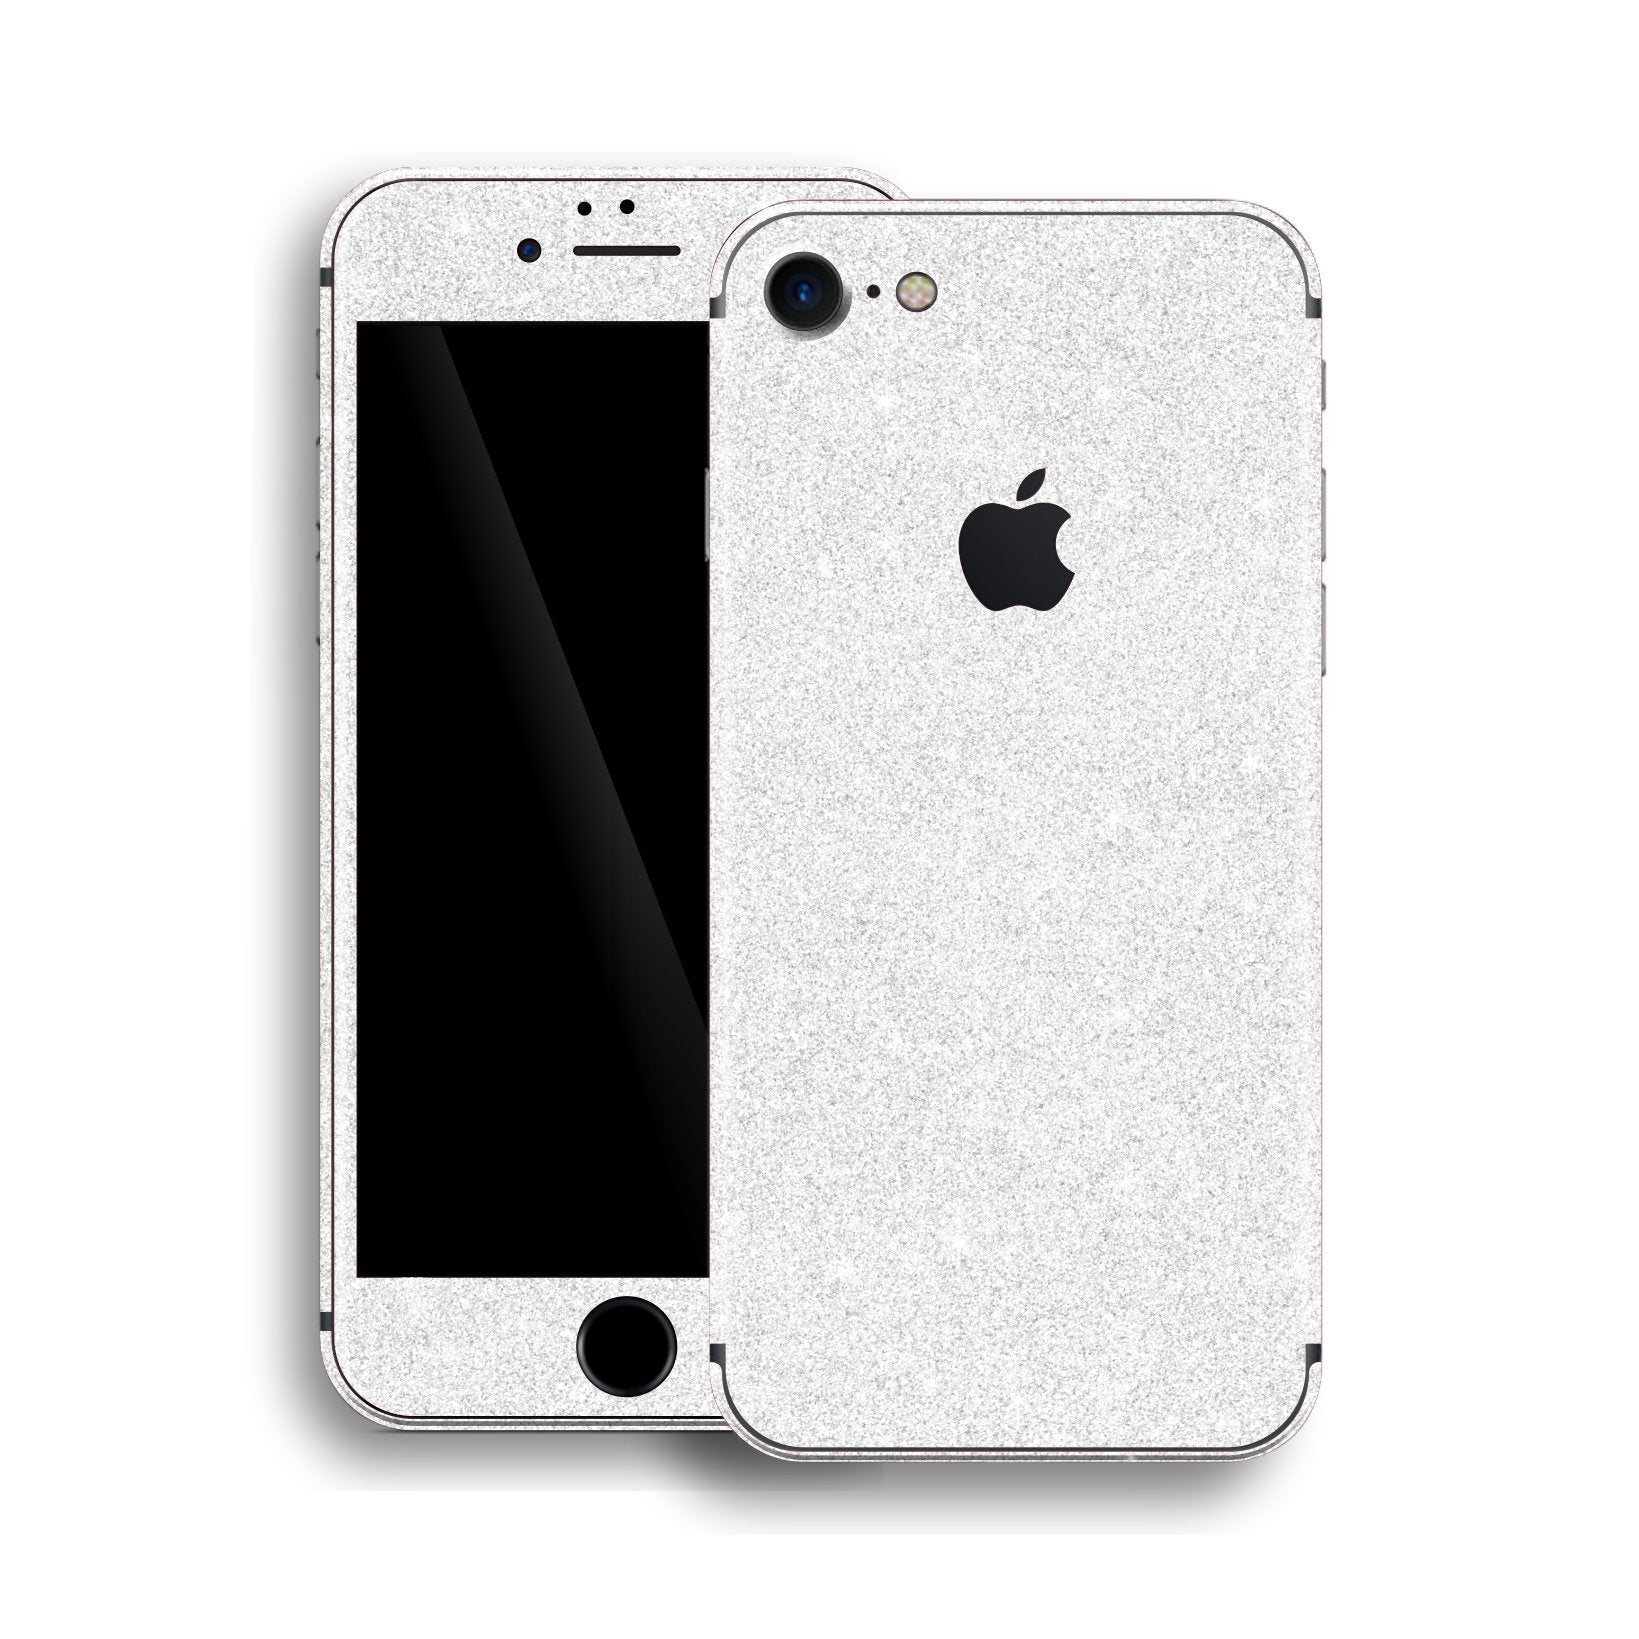 iPhone 8 Diamond WHITE Shimmering, Sparkling, Glitter Skin, Wrap, Decal, Protector, Cover by EasySkinz | EasySkinz.com